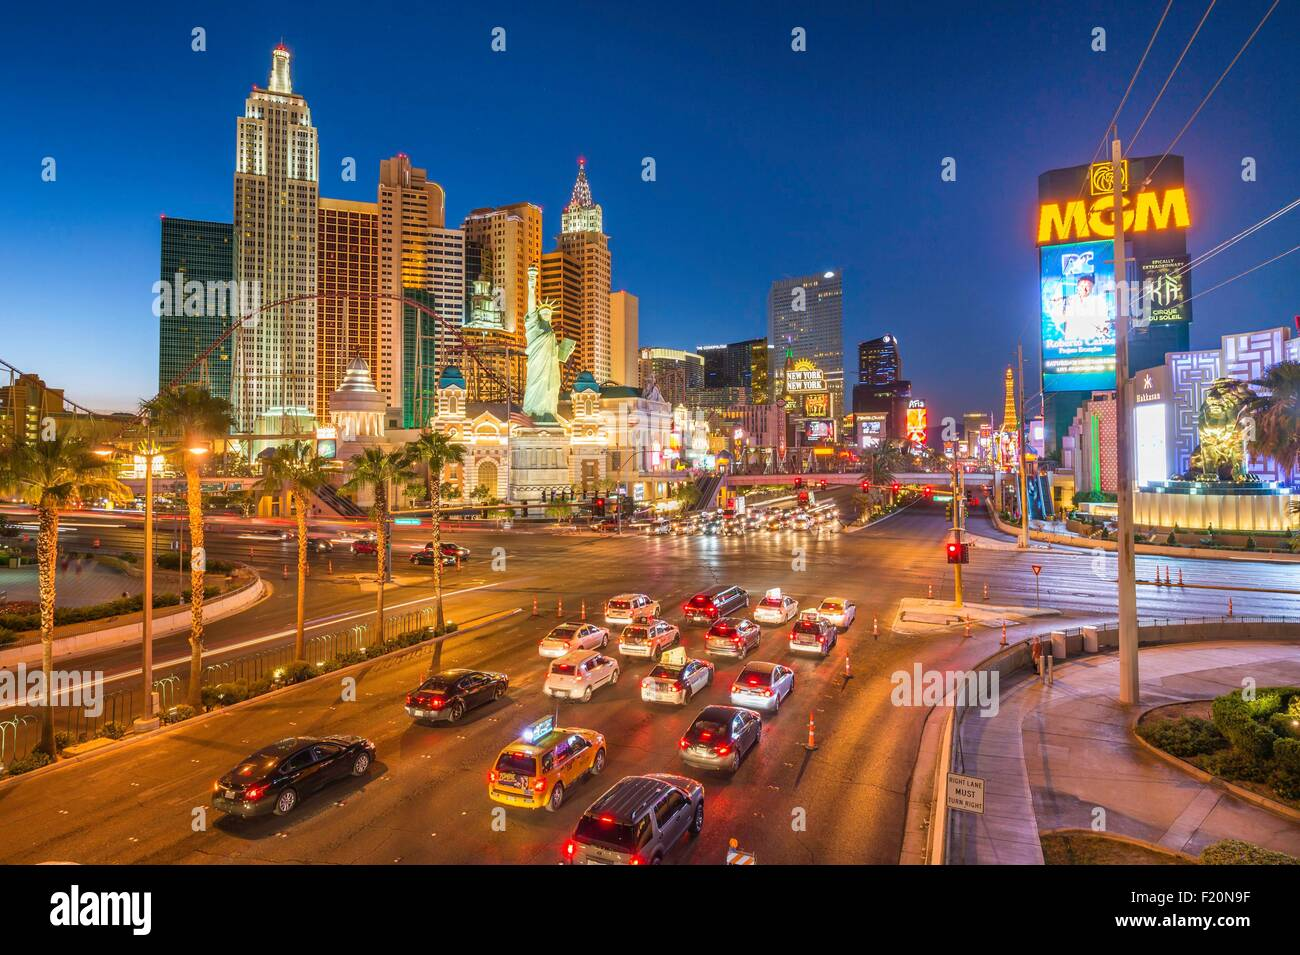 United States, Nevada, Las Vegas, the Strip, New York New York Hotel and Casino - Stock Image